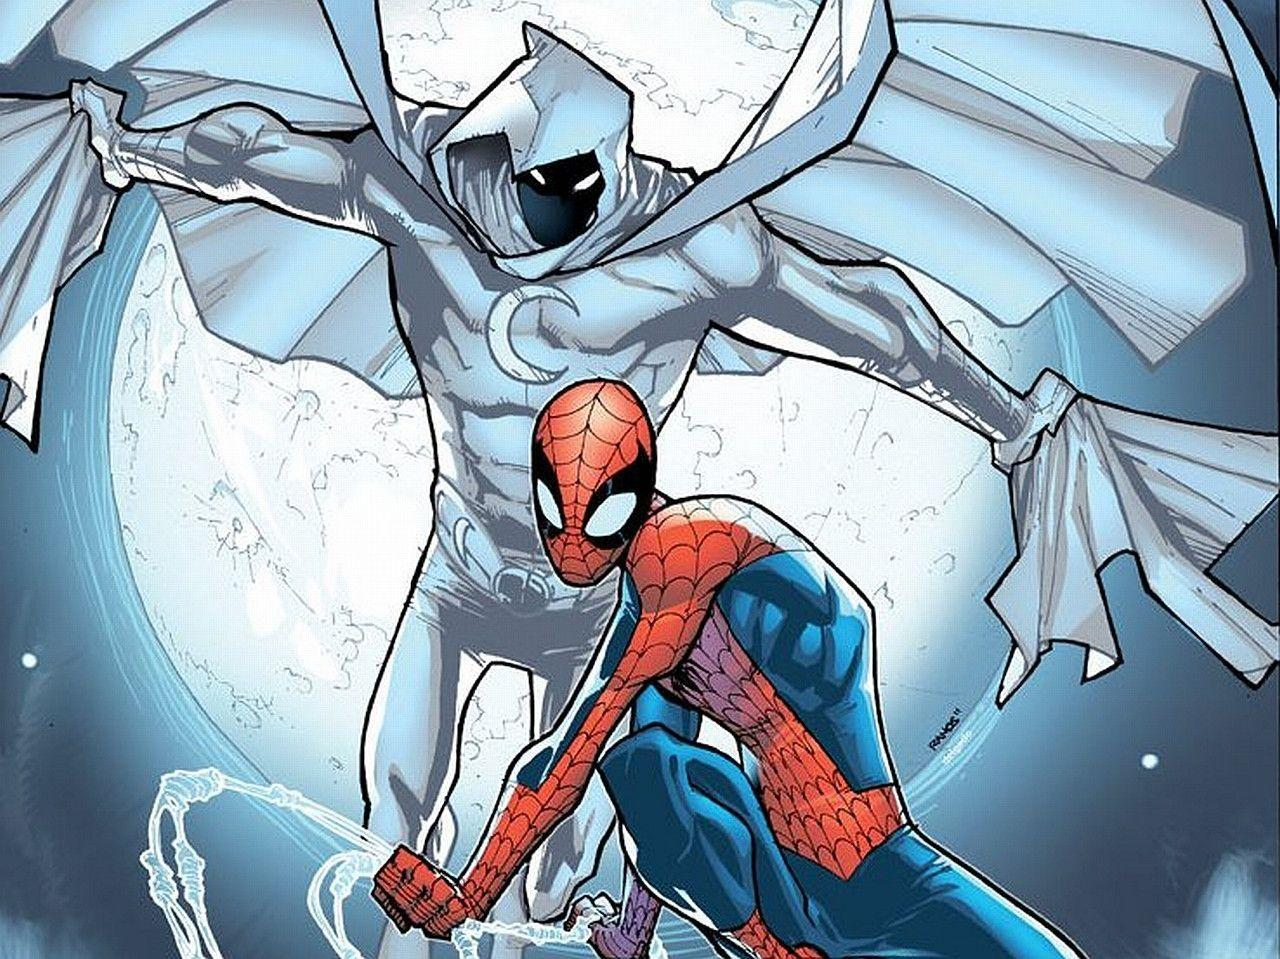 Moon Knight Computer Wallpapers, Desktop Backgrounds 1280x959 Id ...